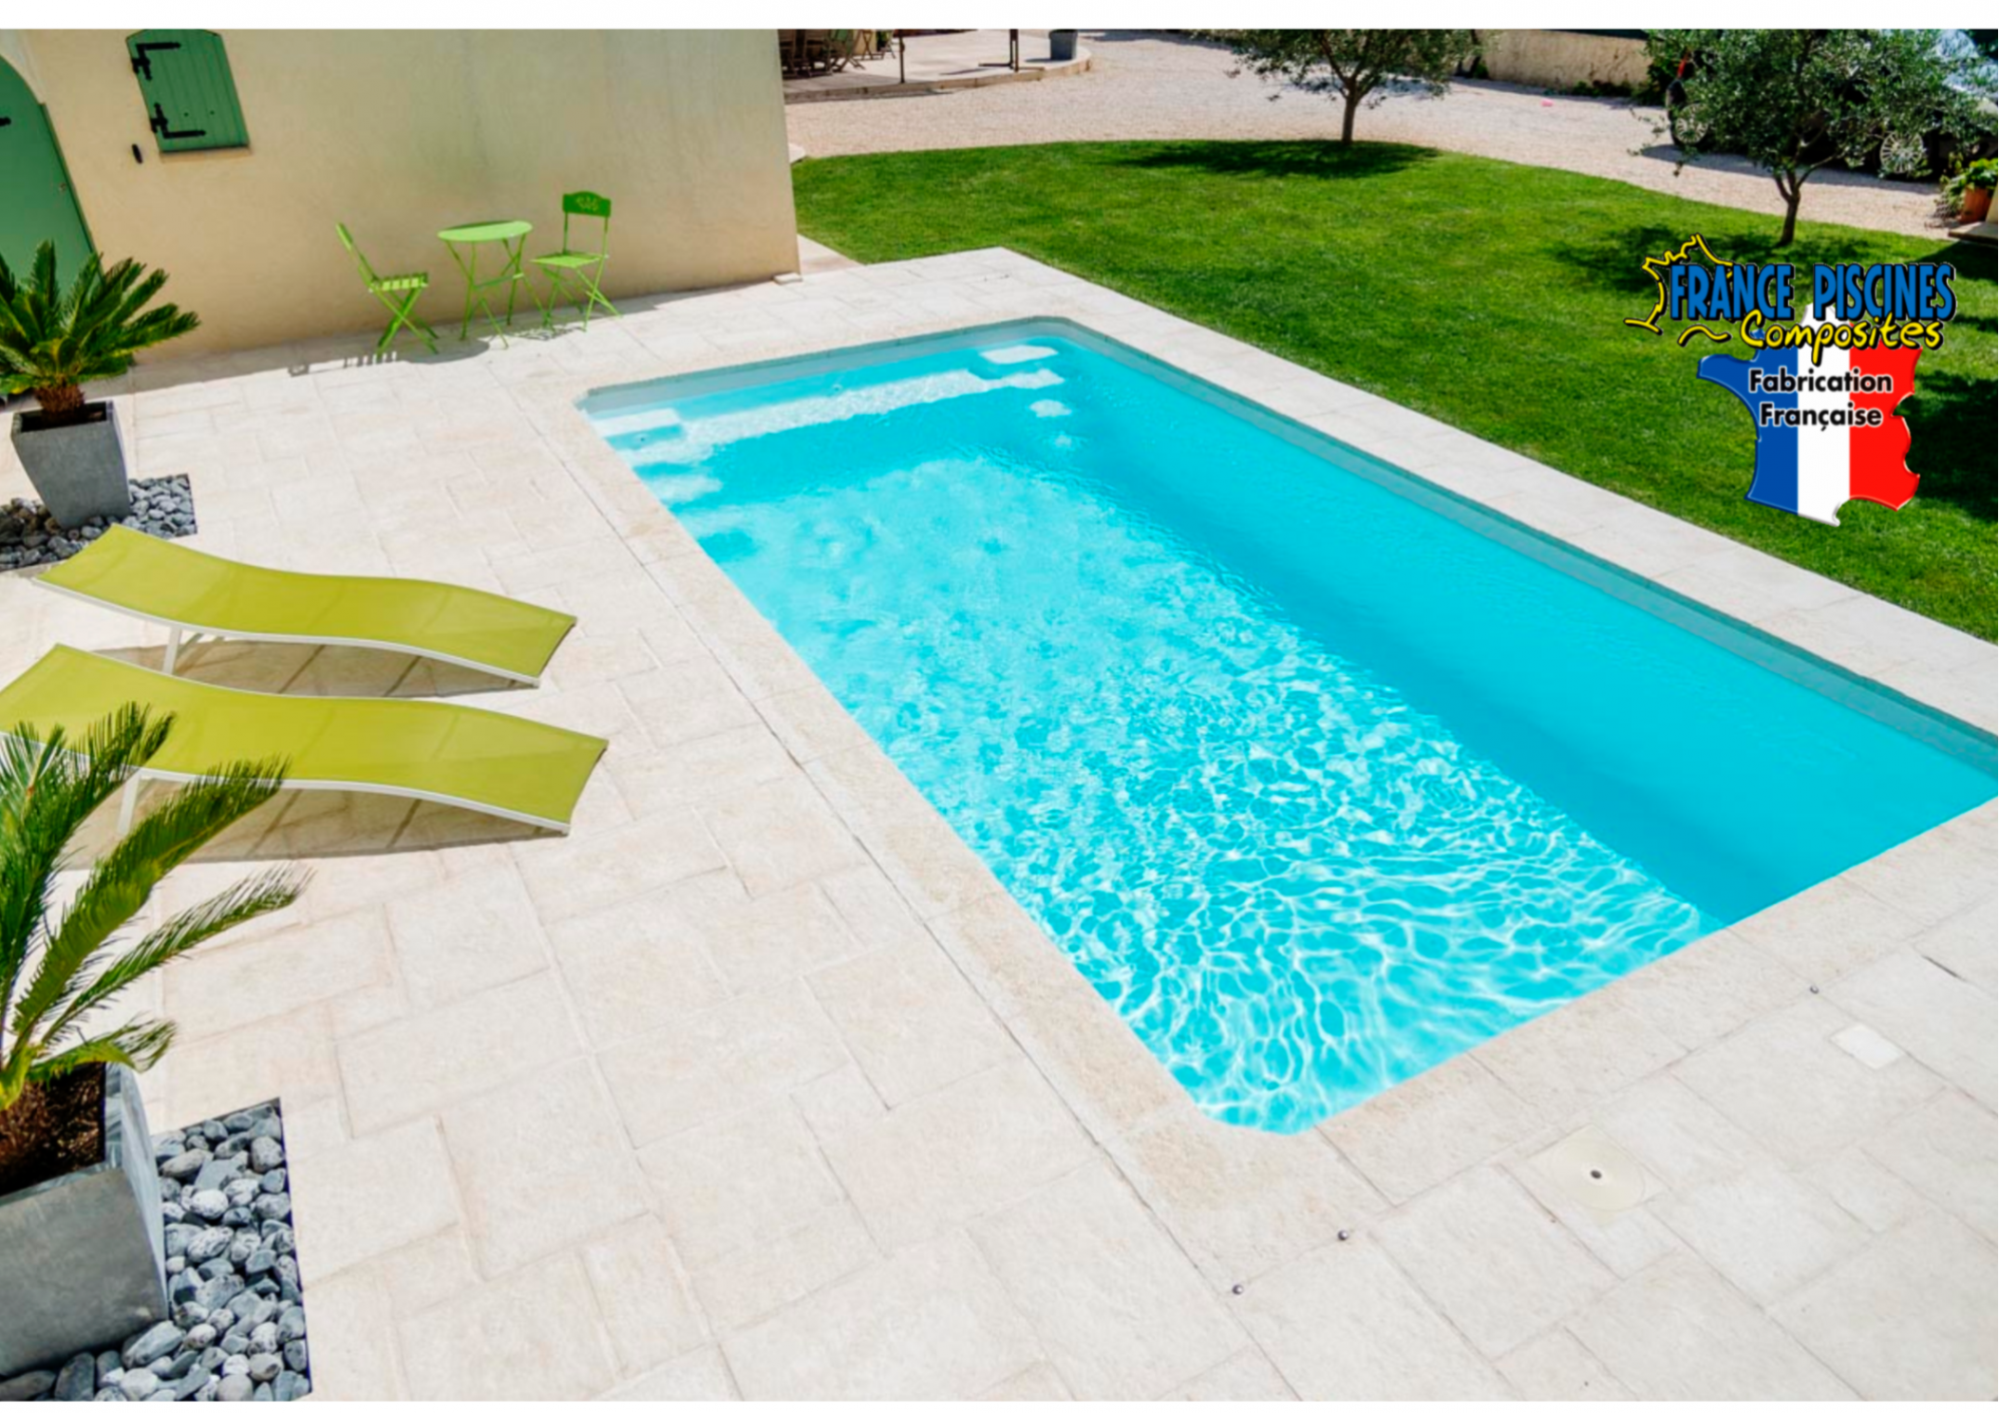 Piscine coque polyester moins de 10m2 istres france for Piscine 10m2